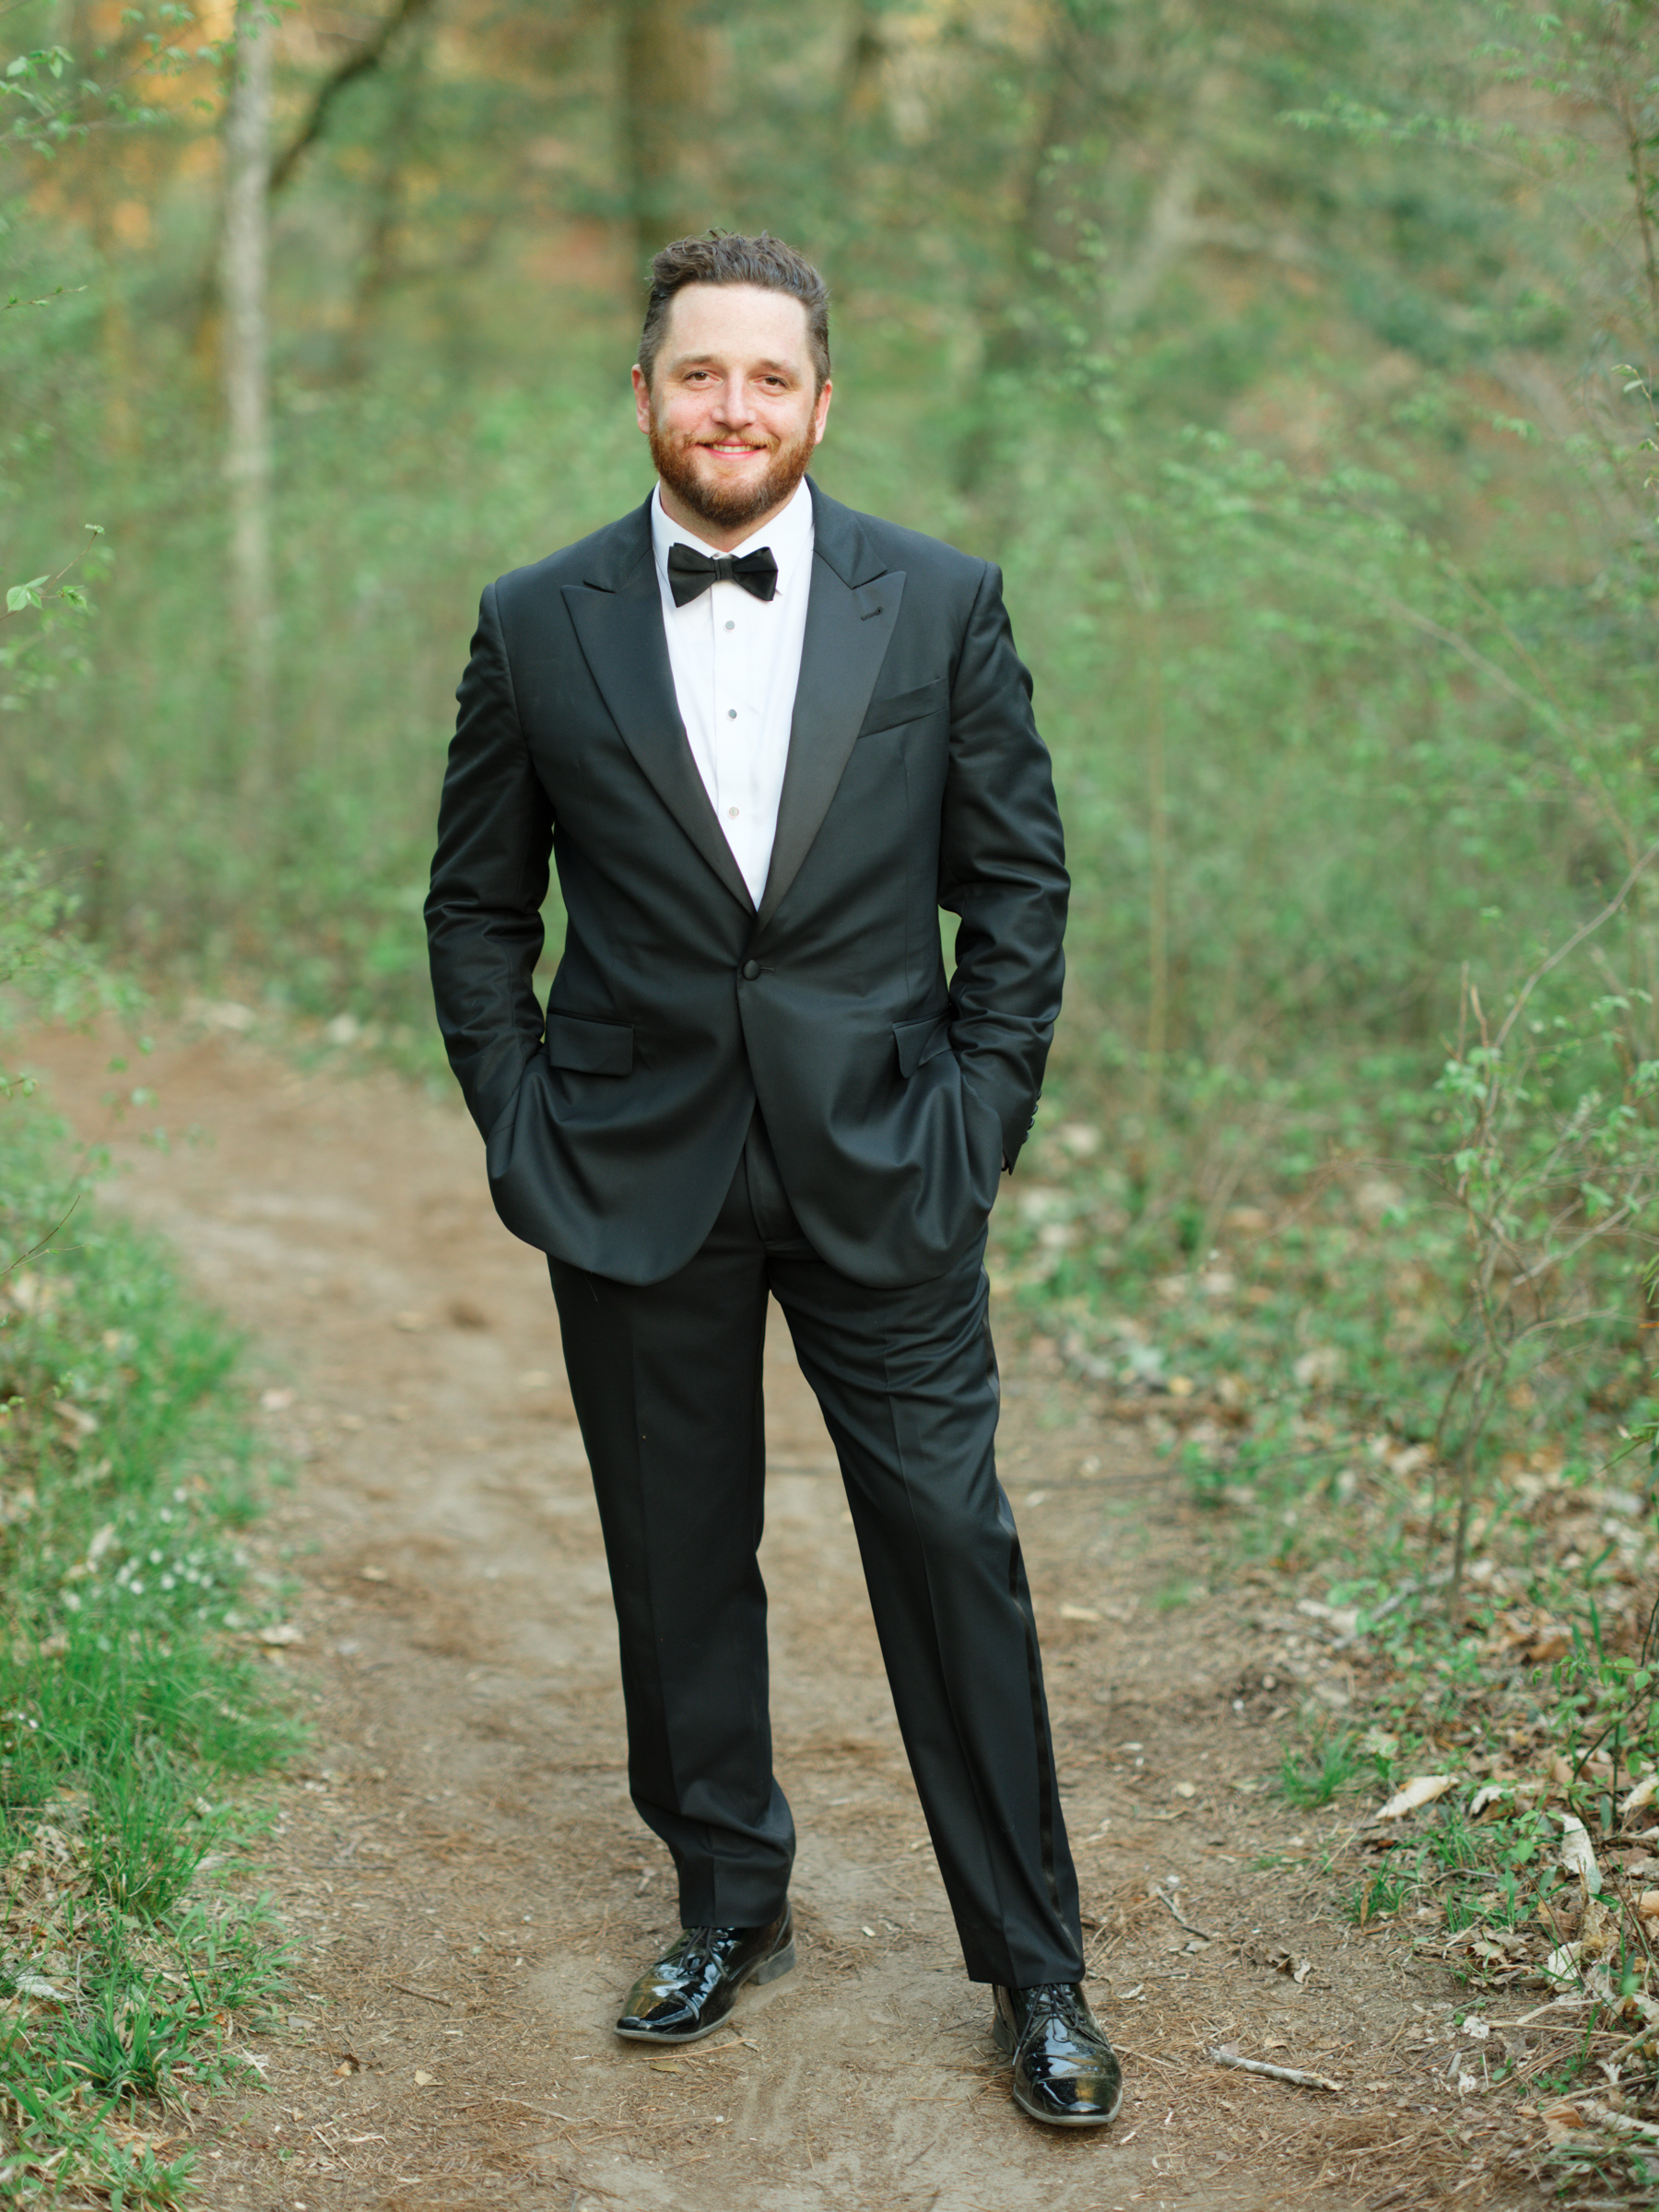 umstead hotel park wedding photography brittany harrison 42